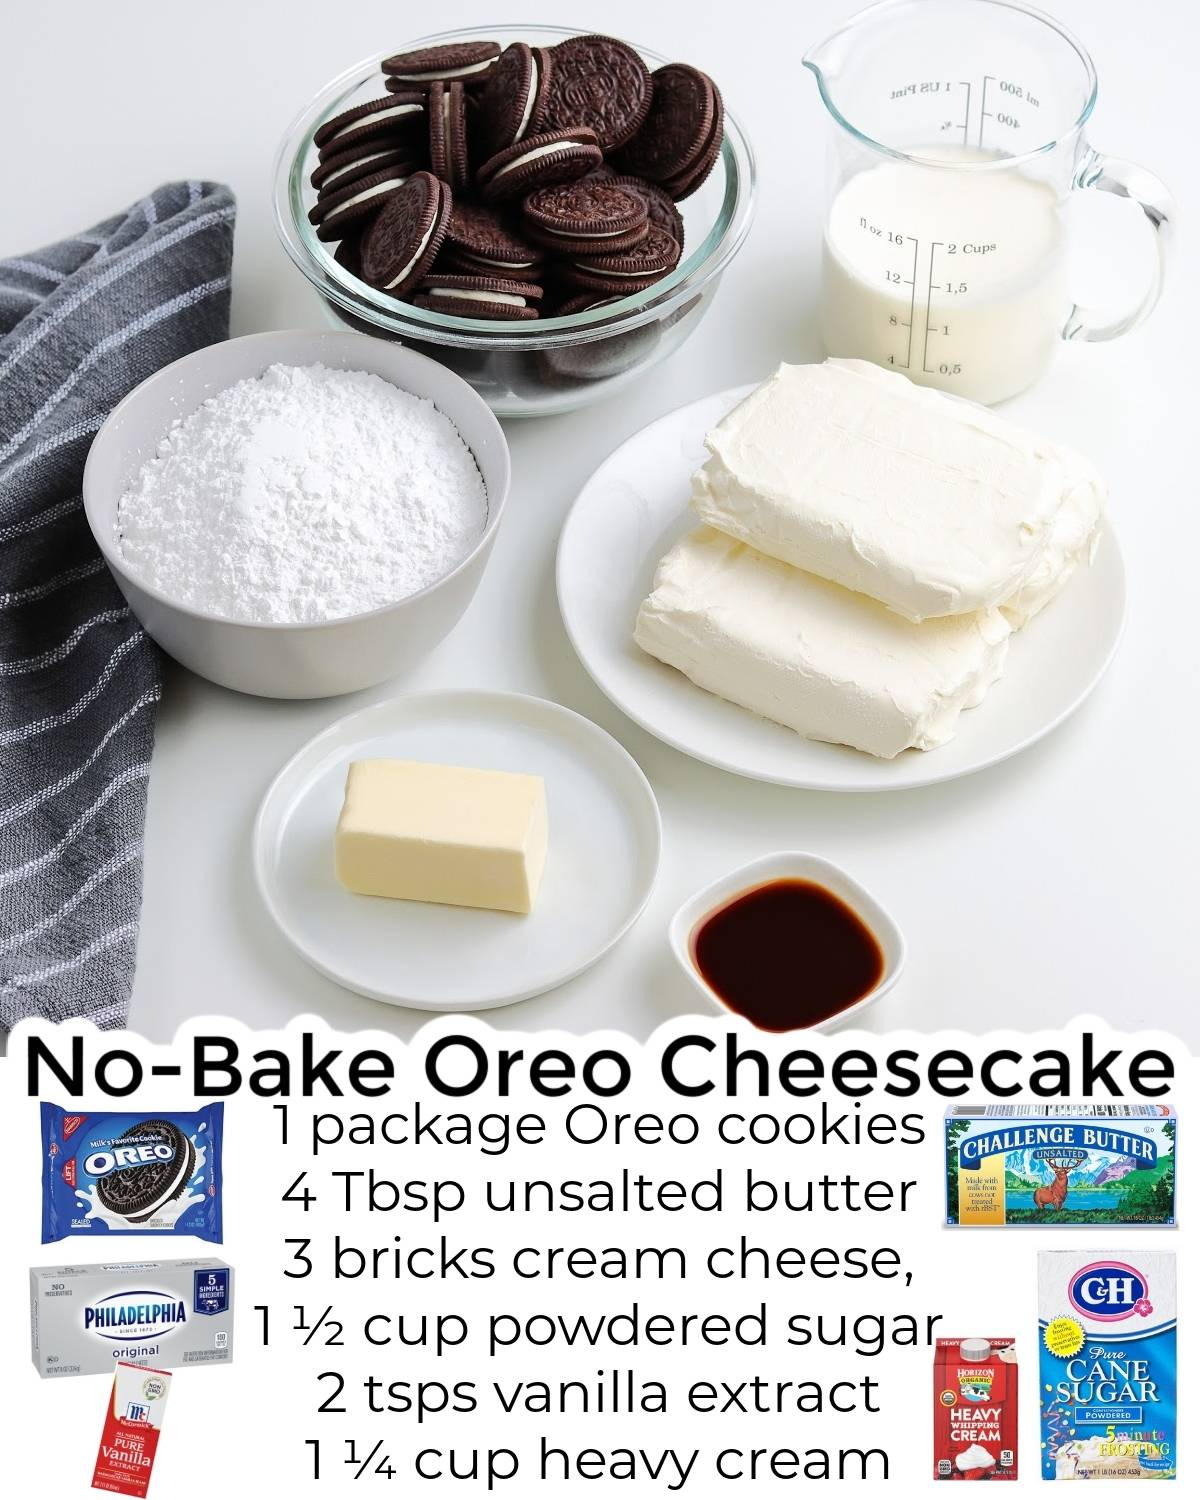 All of the ingredients needed to make this No Bake Oreo Cheesecake recipe.